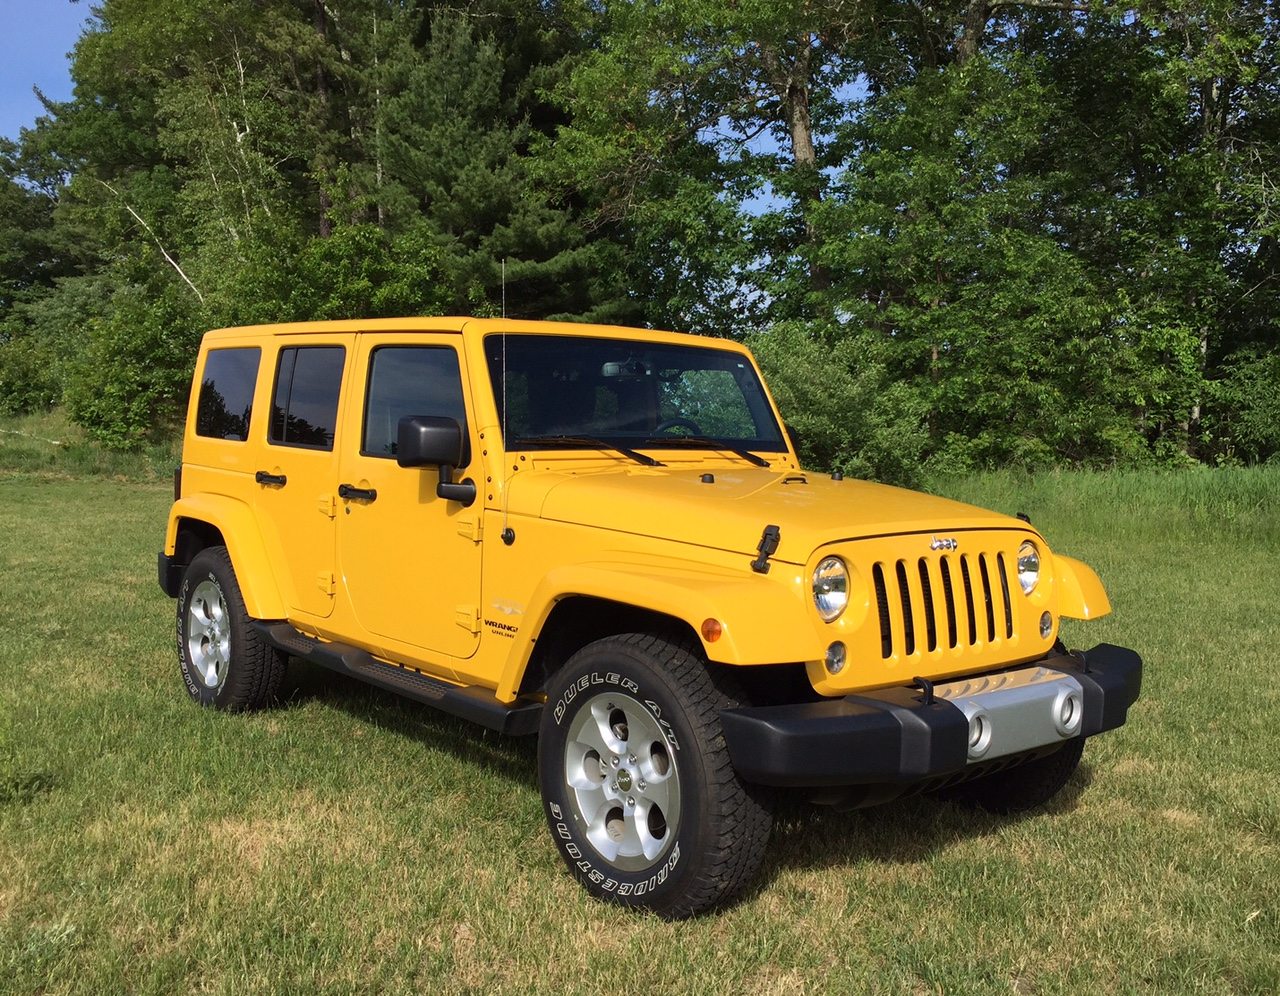 2015 Jeep Wrangler Unlimited Sahara 4x4 Front Quarter